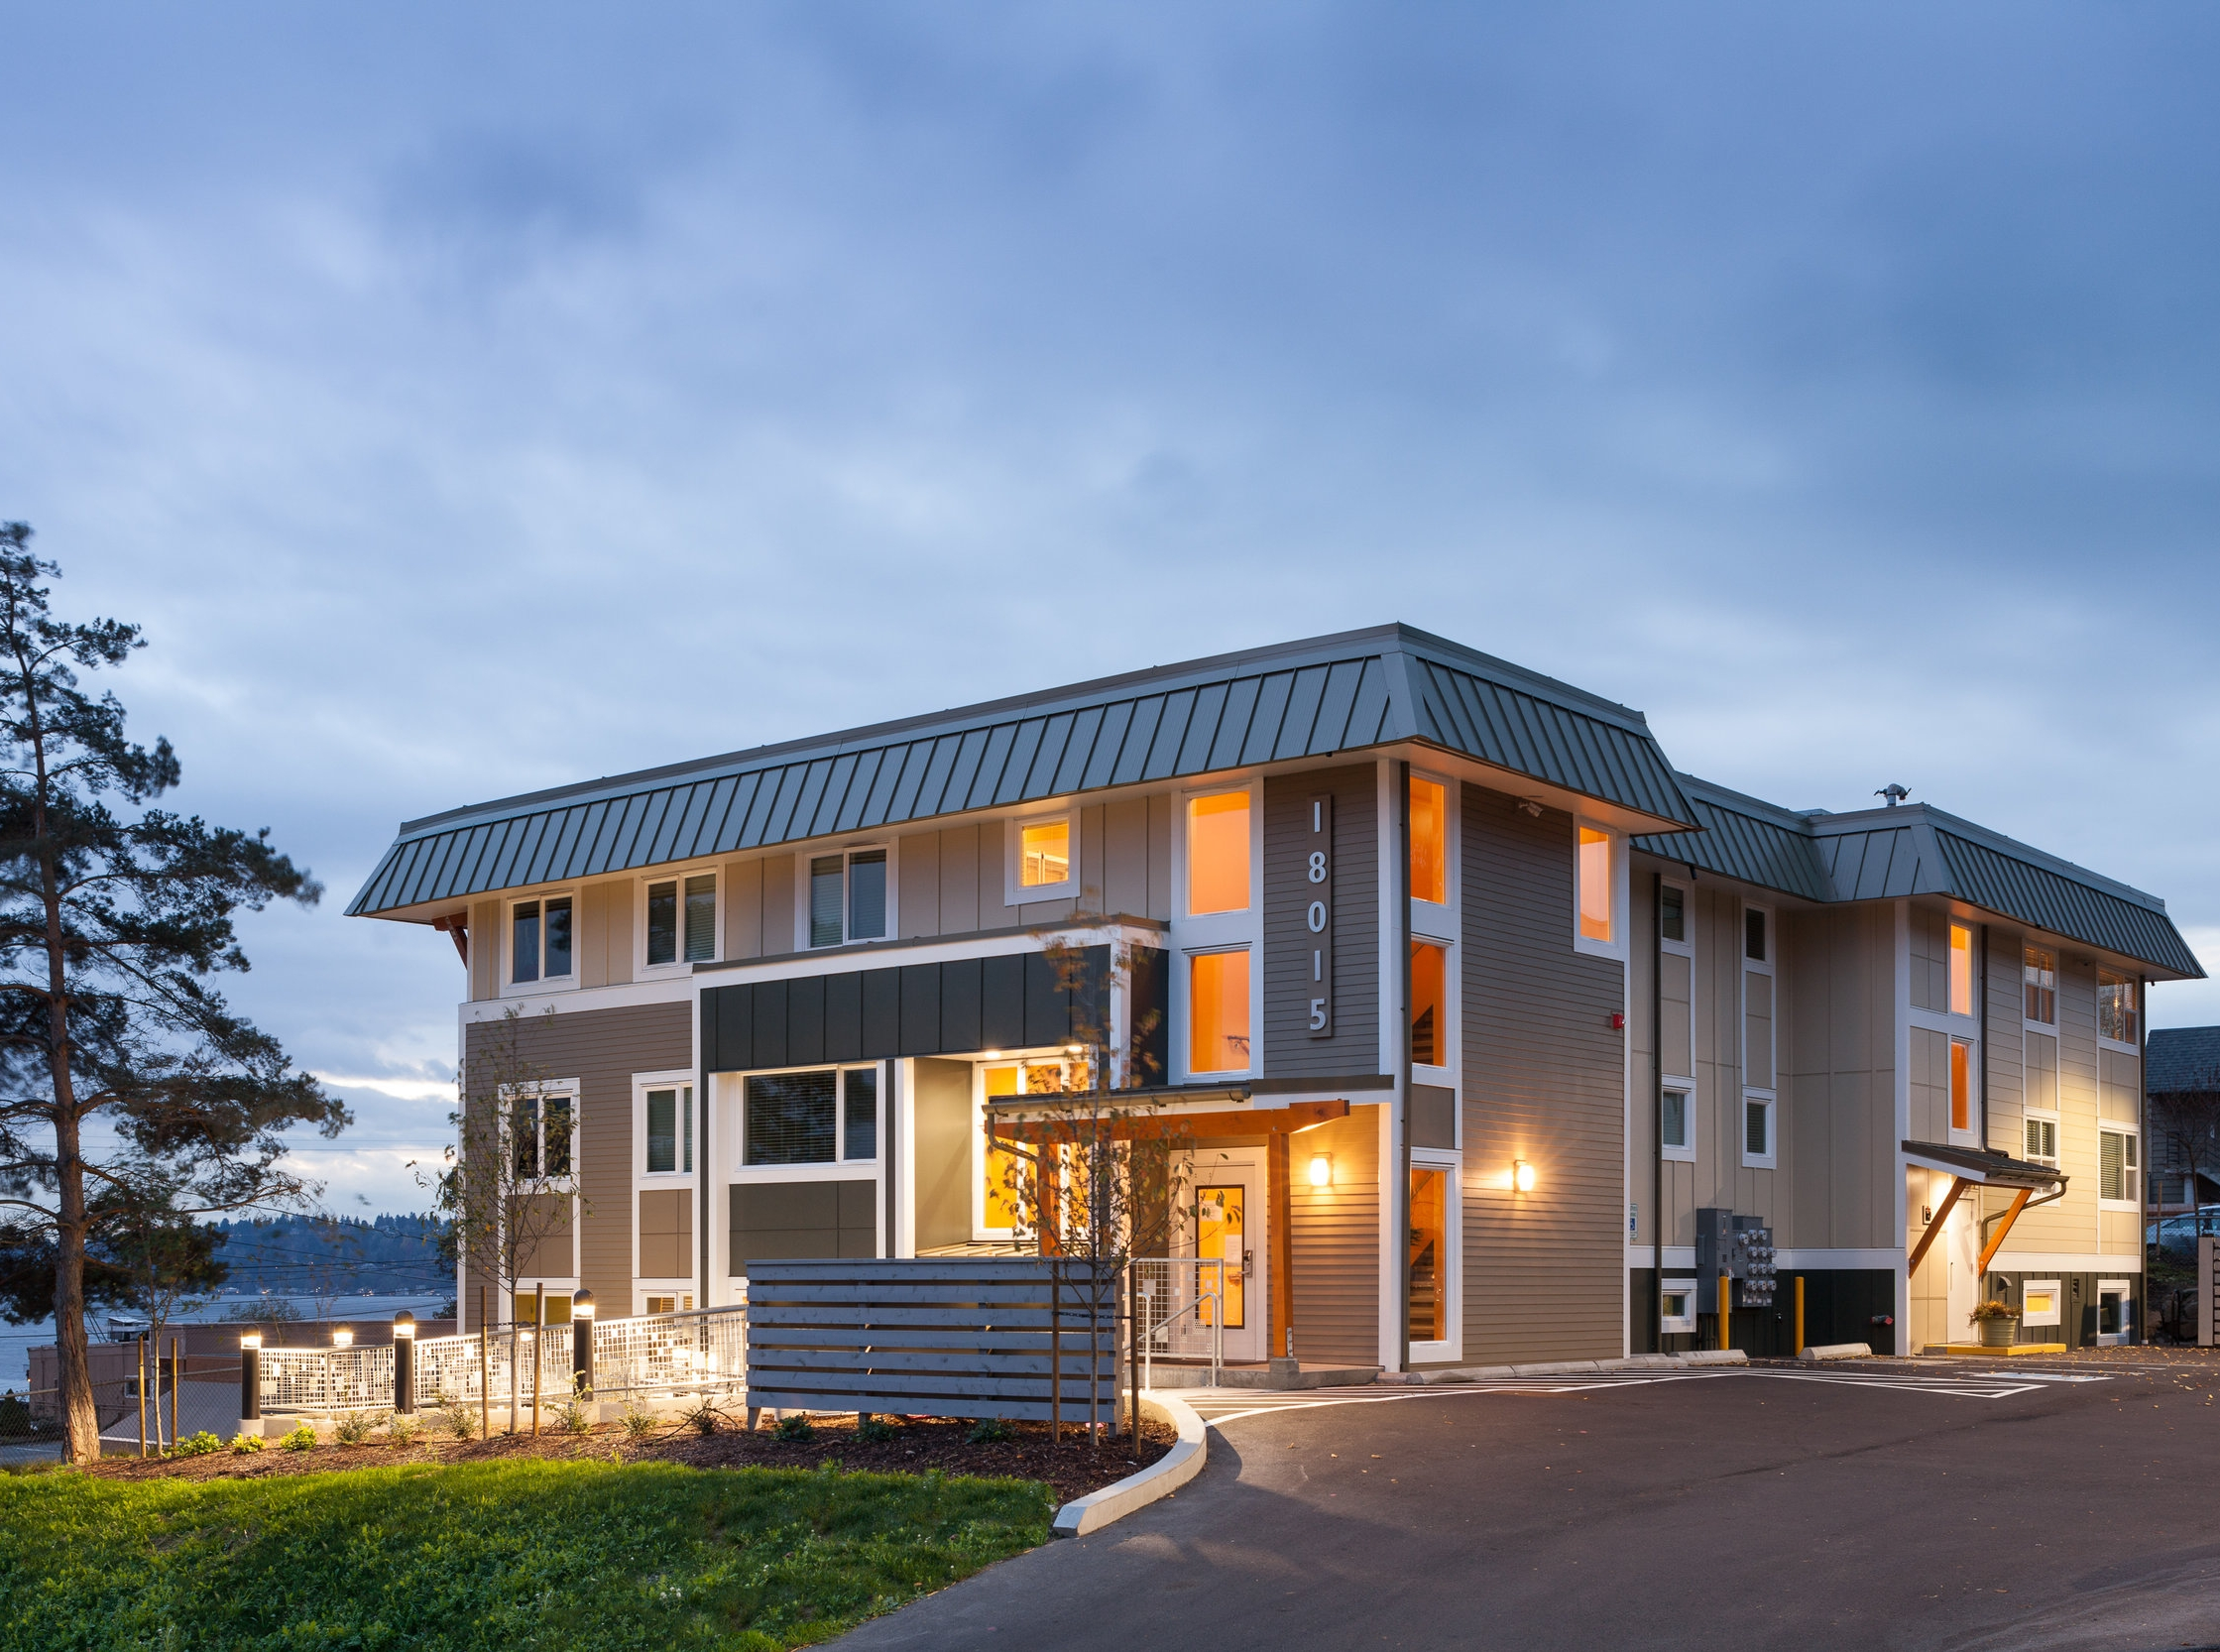 - Client: HopelinkLocation: Kenmore, WashingtonCompletion: 2015Project Size: (11) Units, 11,000 SF